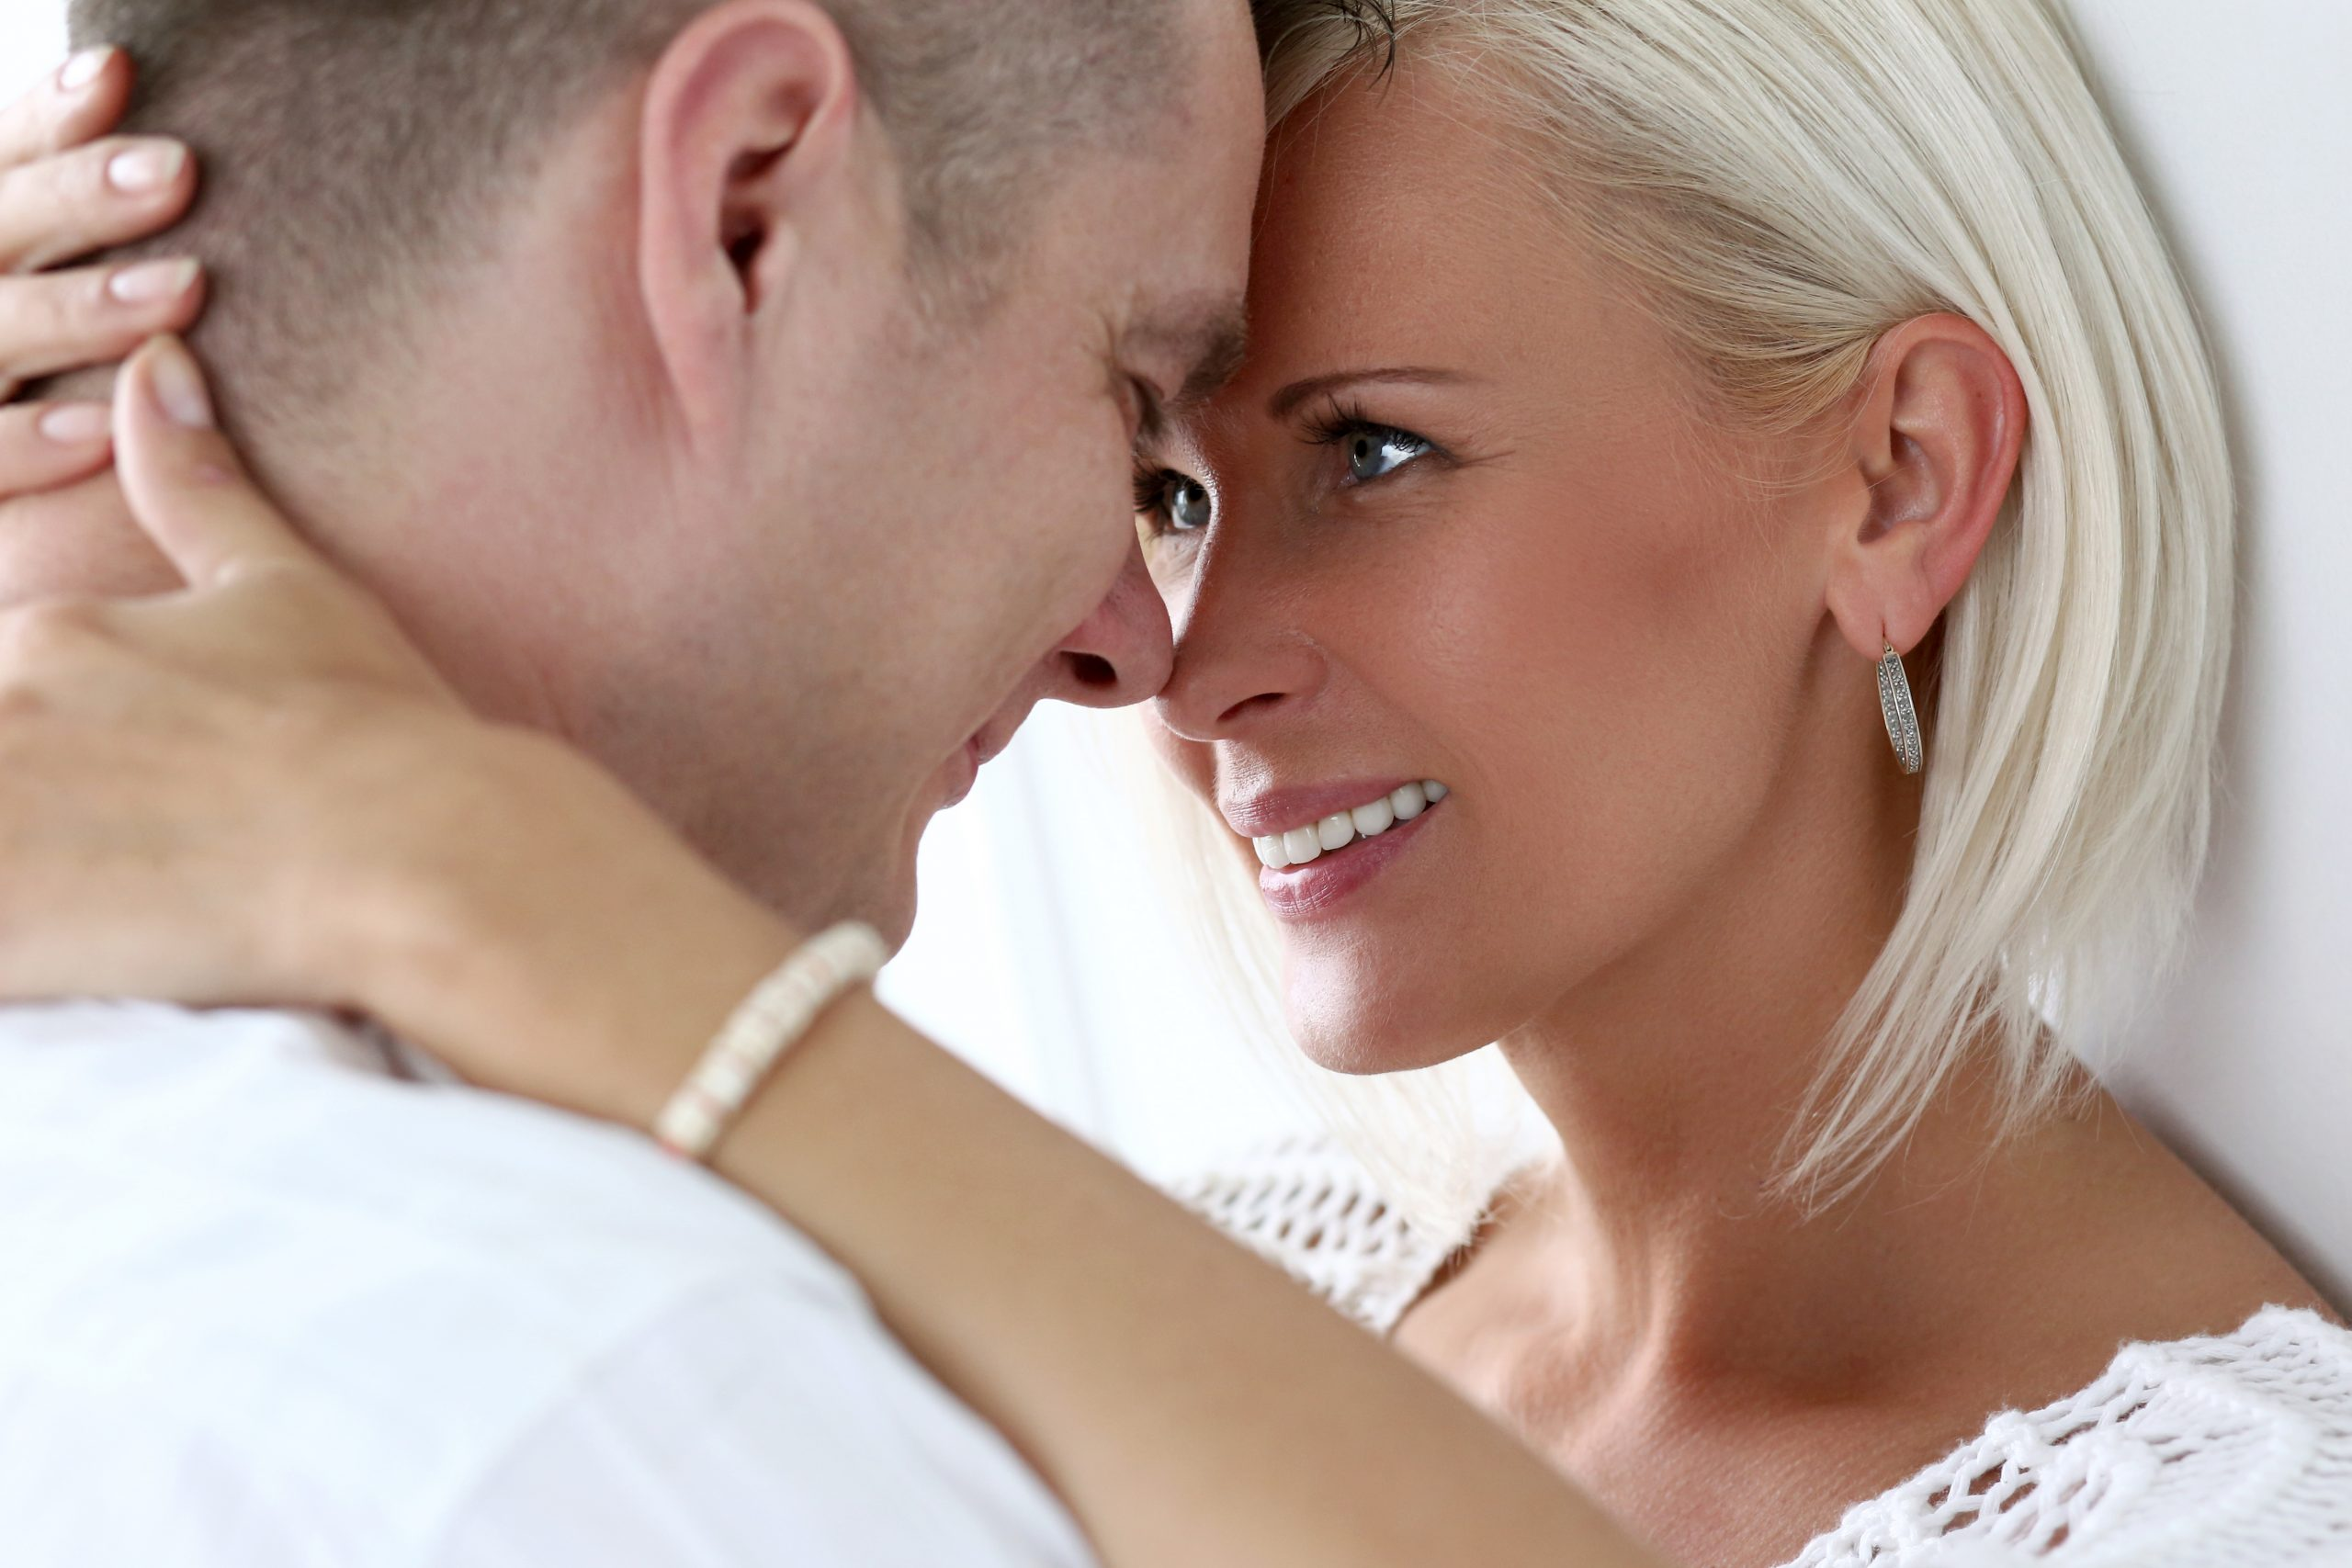 Find A Partner For Marriage